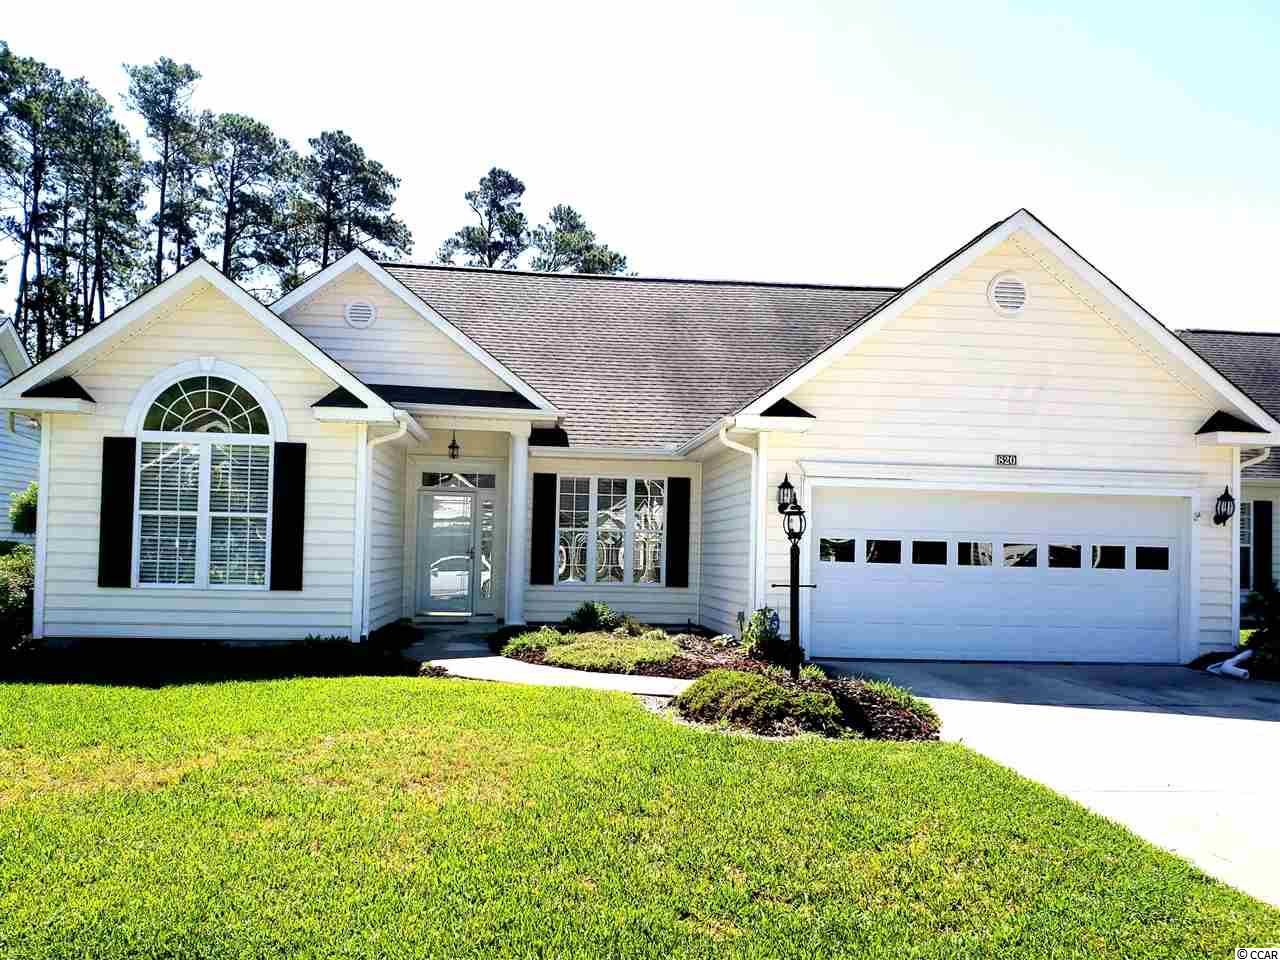 Have you been searching for the Perfect forever home, well you need to see 820 Helms Way, in the quiet 55+ community of Myrtle Trace South! This well kept 3 bedroom, 2 bathroom home welcomes you with A fireplace, split floorplan, hardwood floors in the Livingroom and Sunroom and Ceramic Tile in the Bathrooms! With only one owner, the home has been well Cared for and is move in Ready! Enjoy the tranquility of your private backyard, with lush landscaping which includes irrigation and a retractable Sun setter awning for those sunny days! Home is located close to Conway Medical Center, Many Golf Courses, shopping and restaurants, Oh And THE BEACH! Don't let this Move in ready home pass you by, tell your agent to  bring you to your new home today